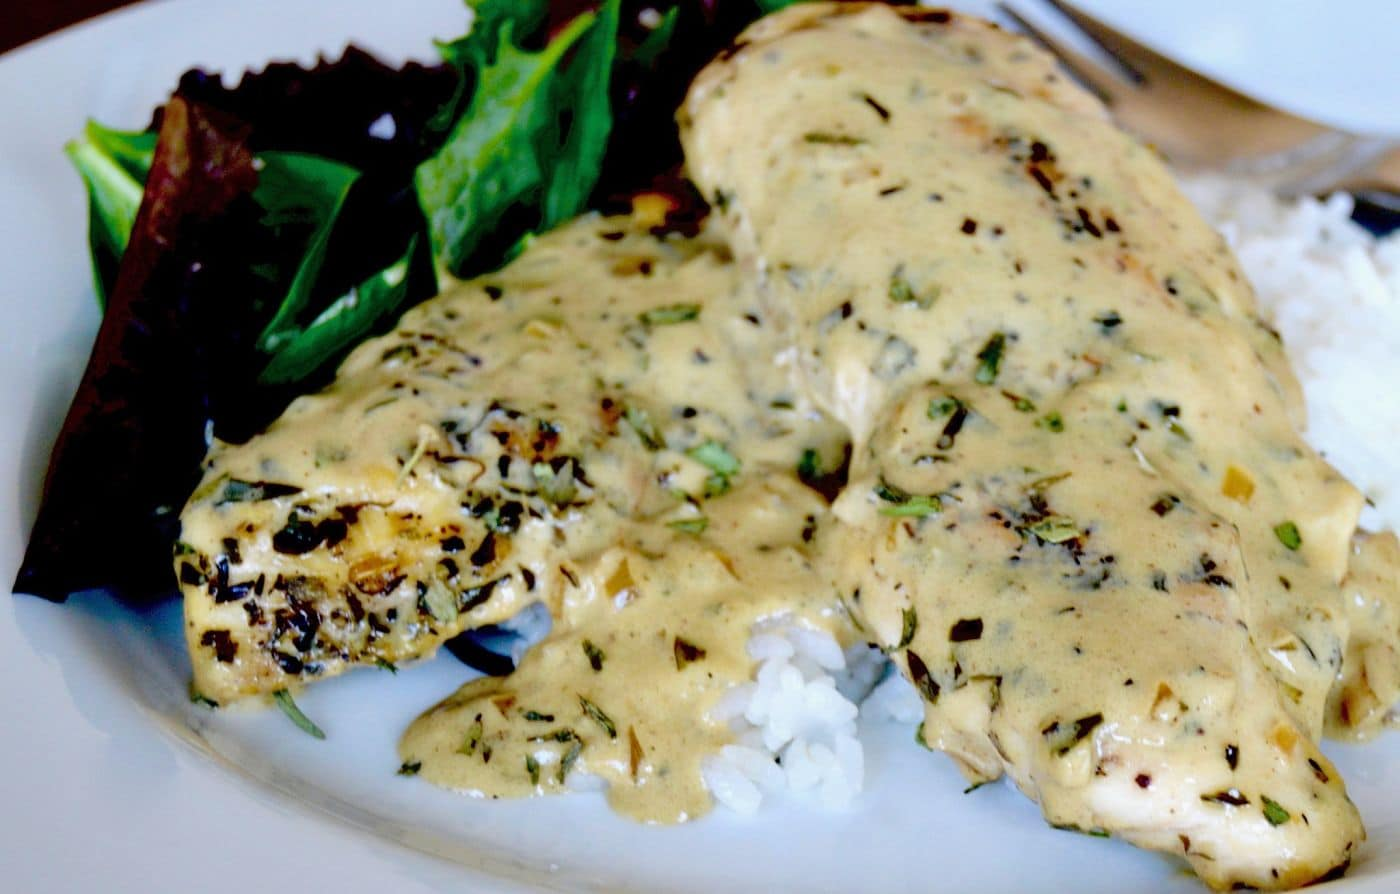 Looking for a quick weeknight dinner that will impress? This Mustard Cream Chicken Sauté recipe is easy, quick and delicious. Reminiscent of Julia Child's French dishes it is sure to be a hit for anyone craving a decadent, comforting meal!